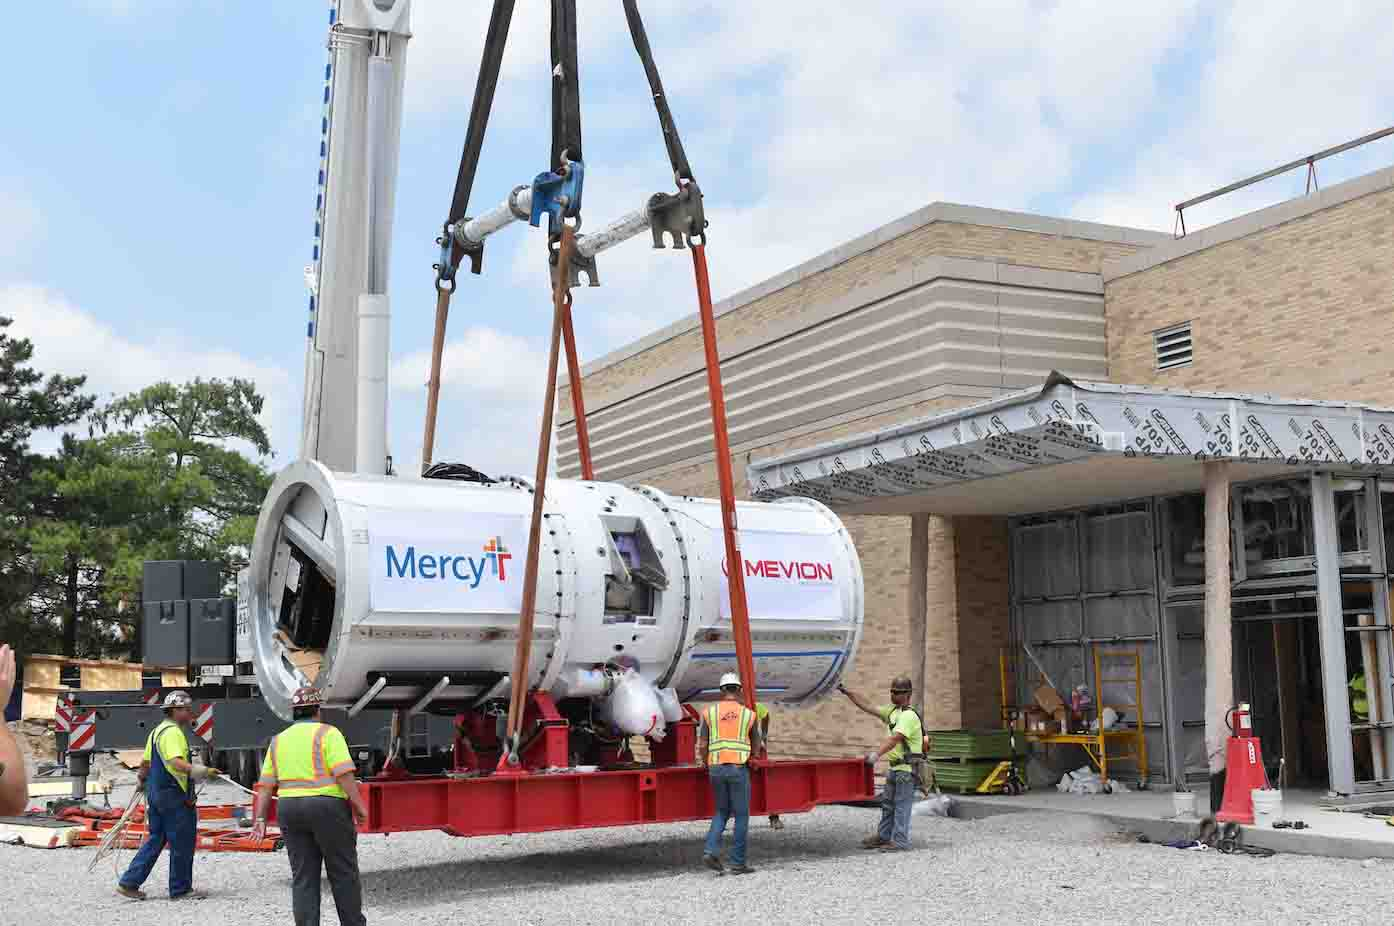 Mevion compact proton therapy for Mercy Hospital St. Louis in Missouri